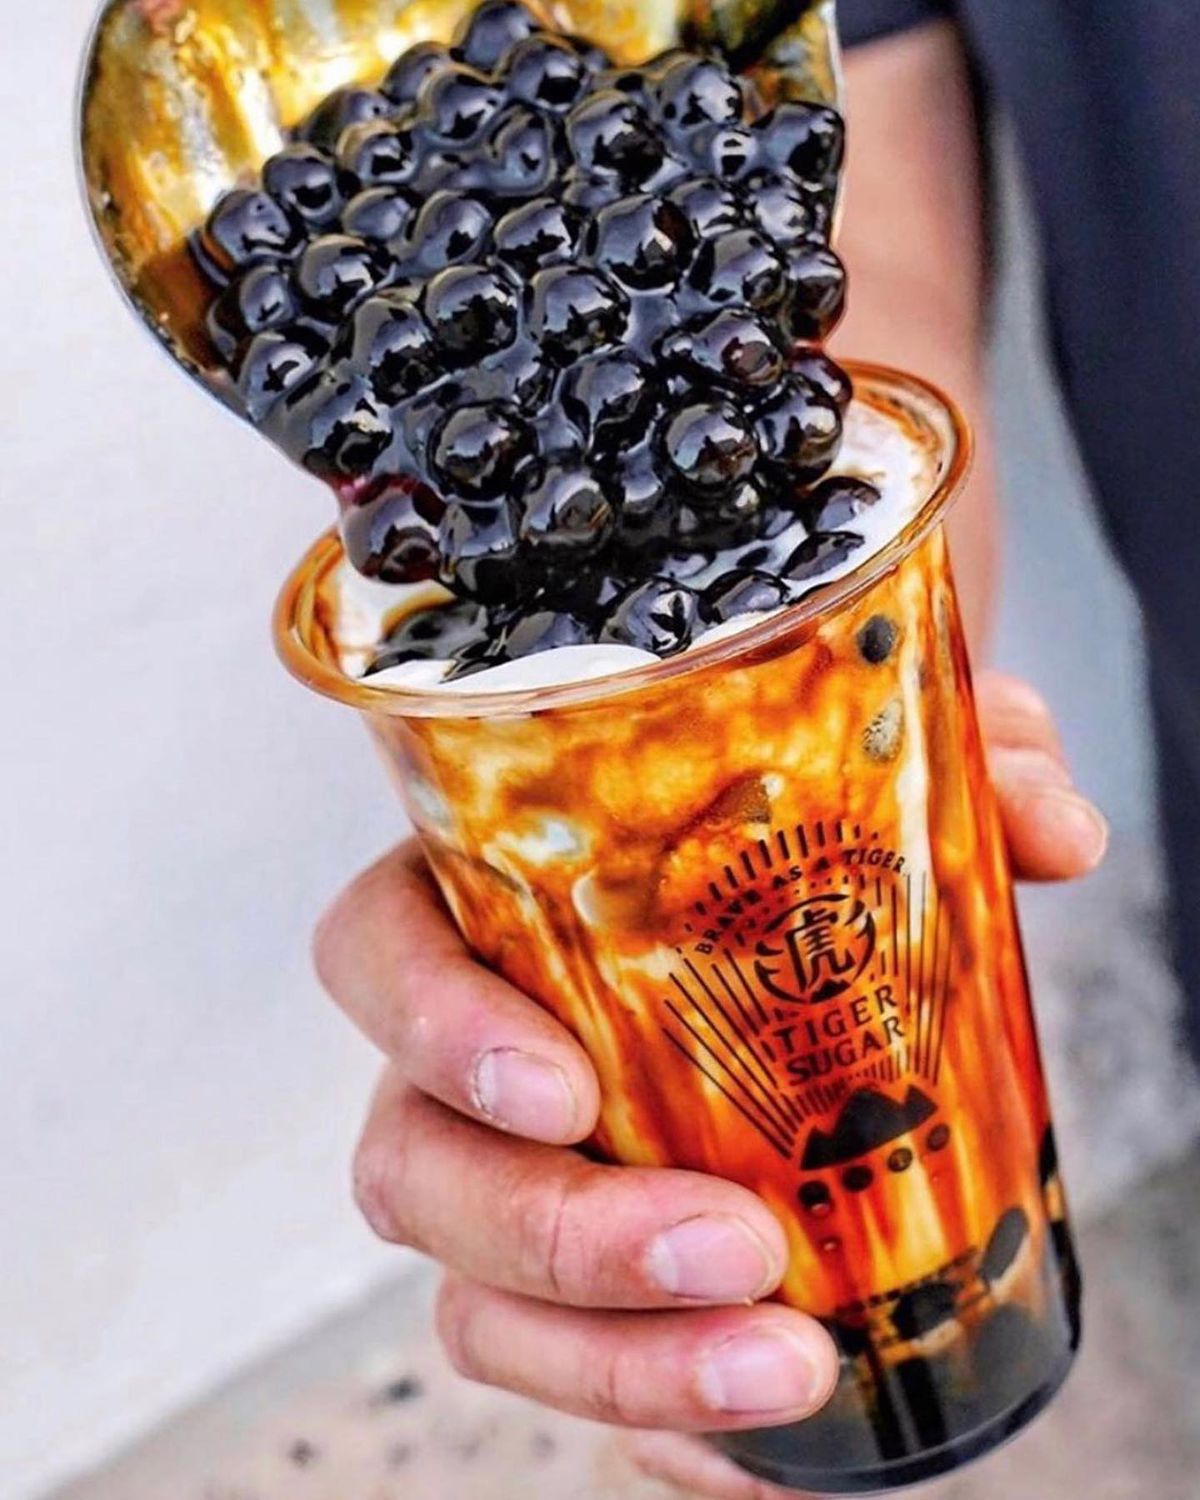 From films such as coffy and dolemite, to hit shows like saints and sinners, it's a black explosion of hot chicks, cool cats and cult classics. Tiger Sugar Brings Wildly Instagrammable Brown Sugar Boba ...